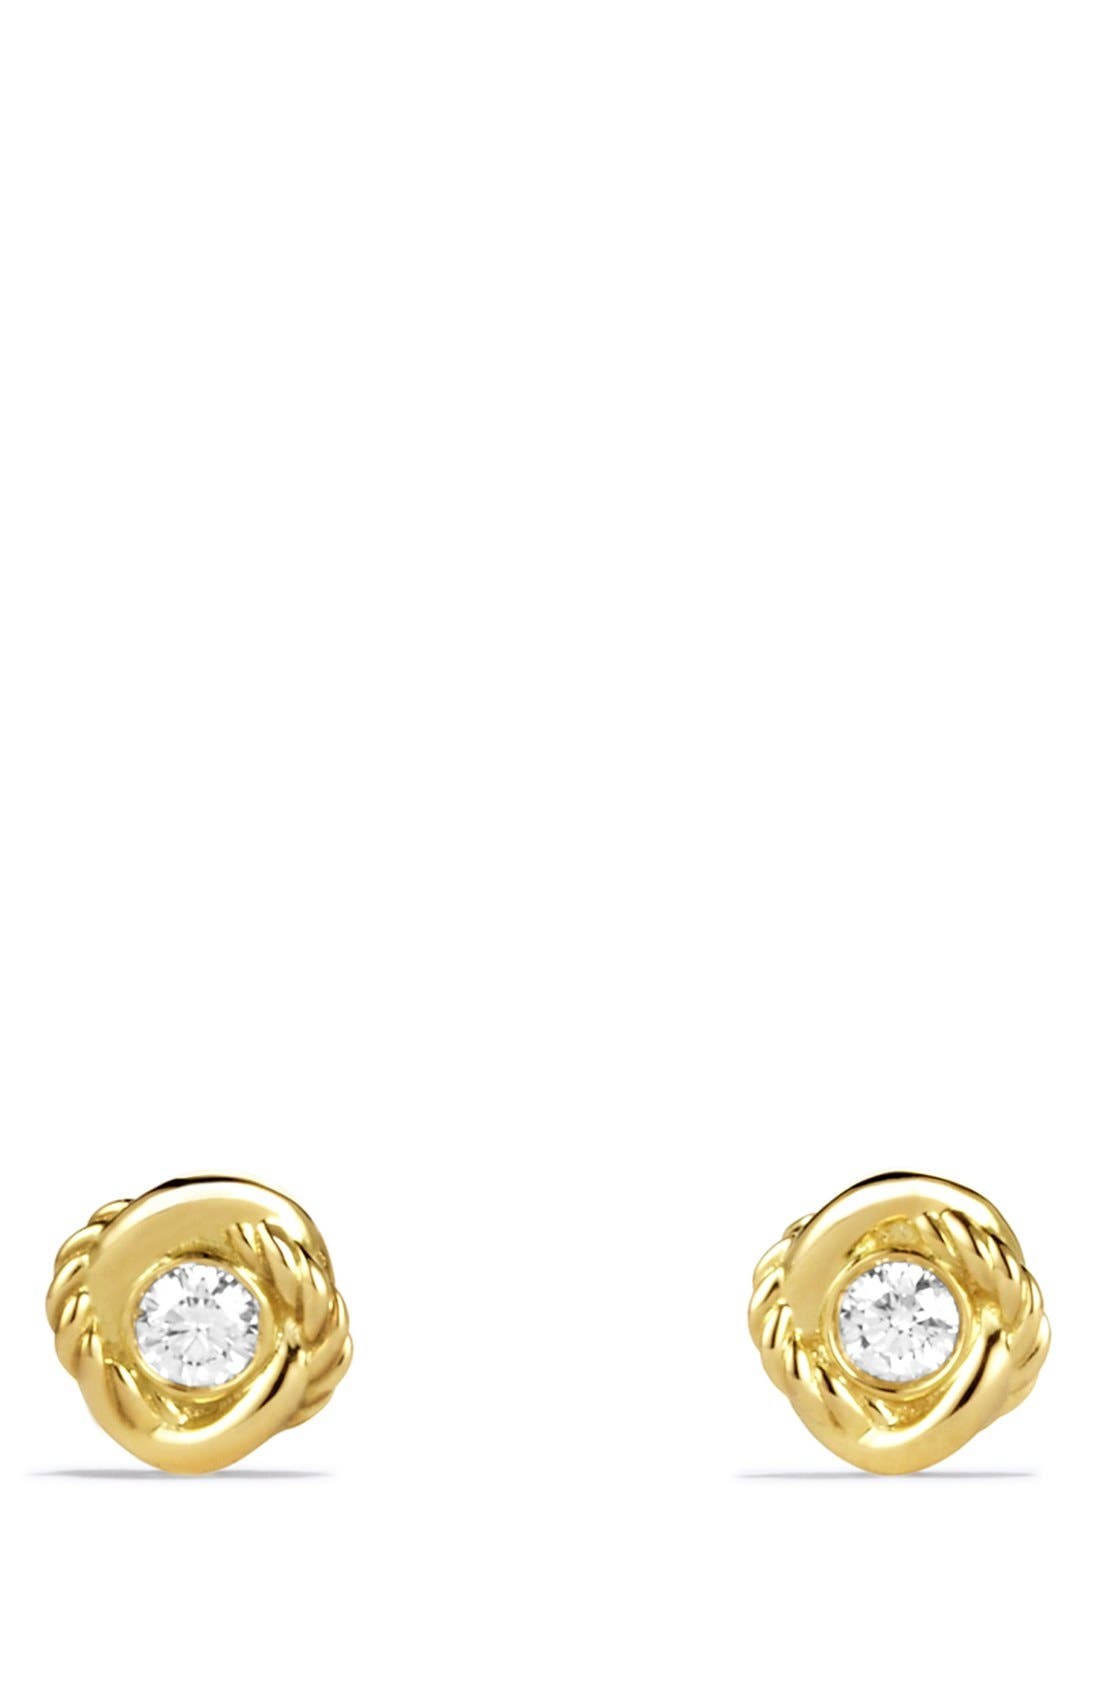 'Infinity' Earrings with Diamonds in Gold,                             Alternate thumbnail 2, color,                             Diamond